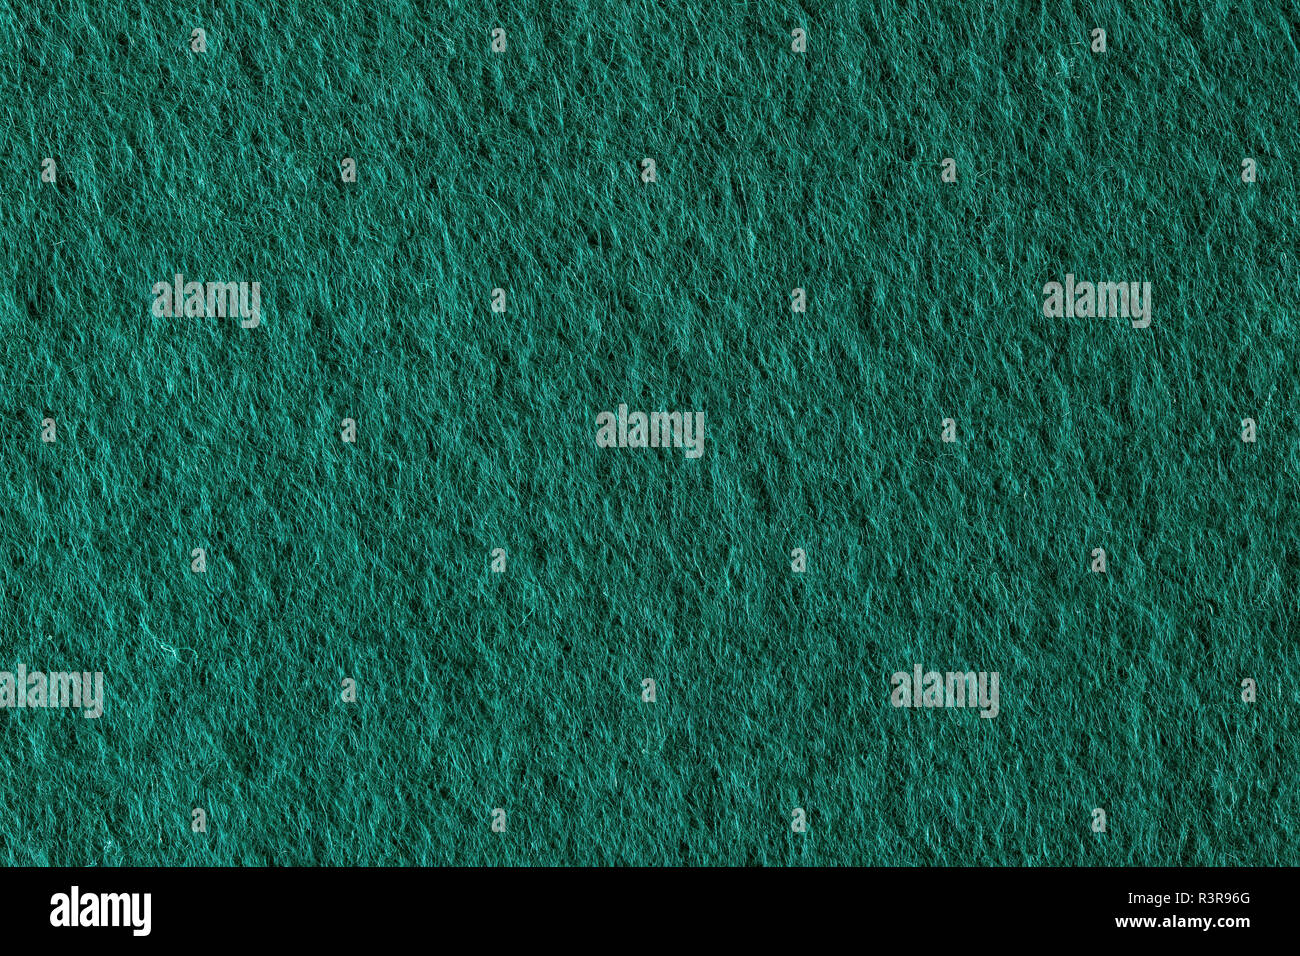 Poker table felt background in green color. - Stock Image